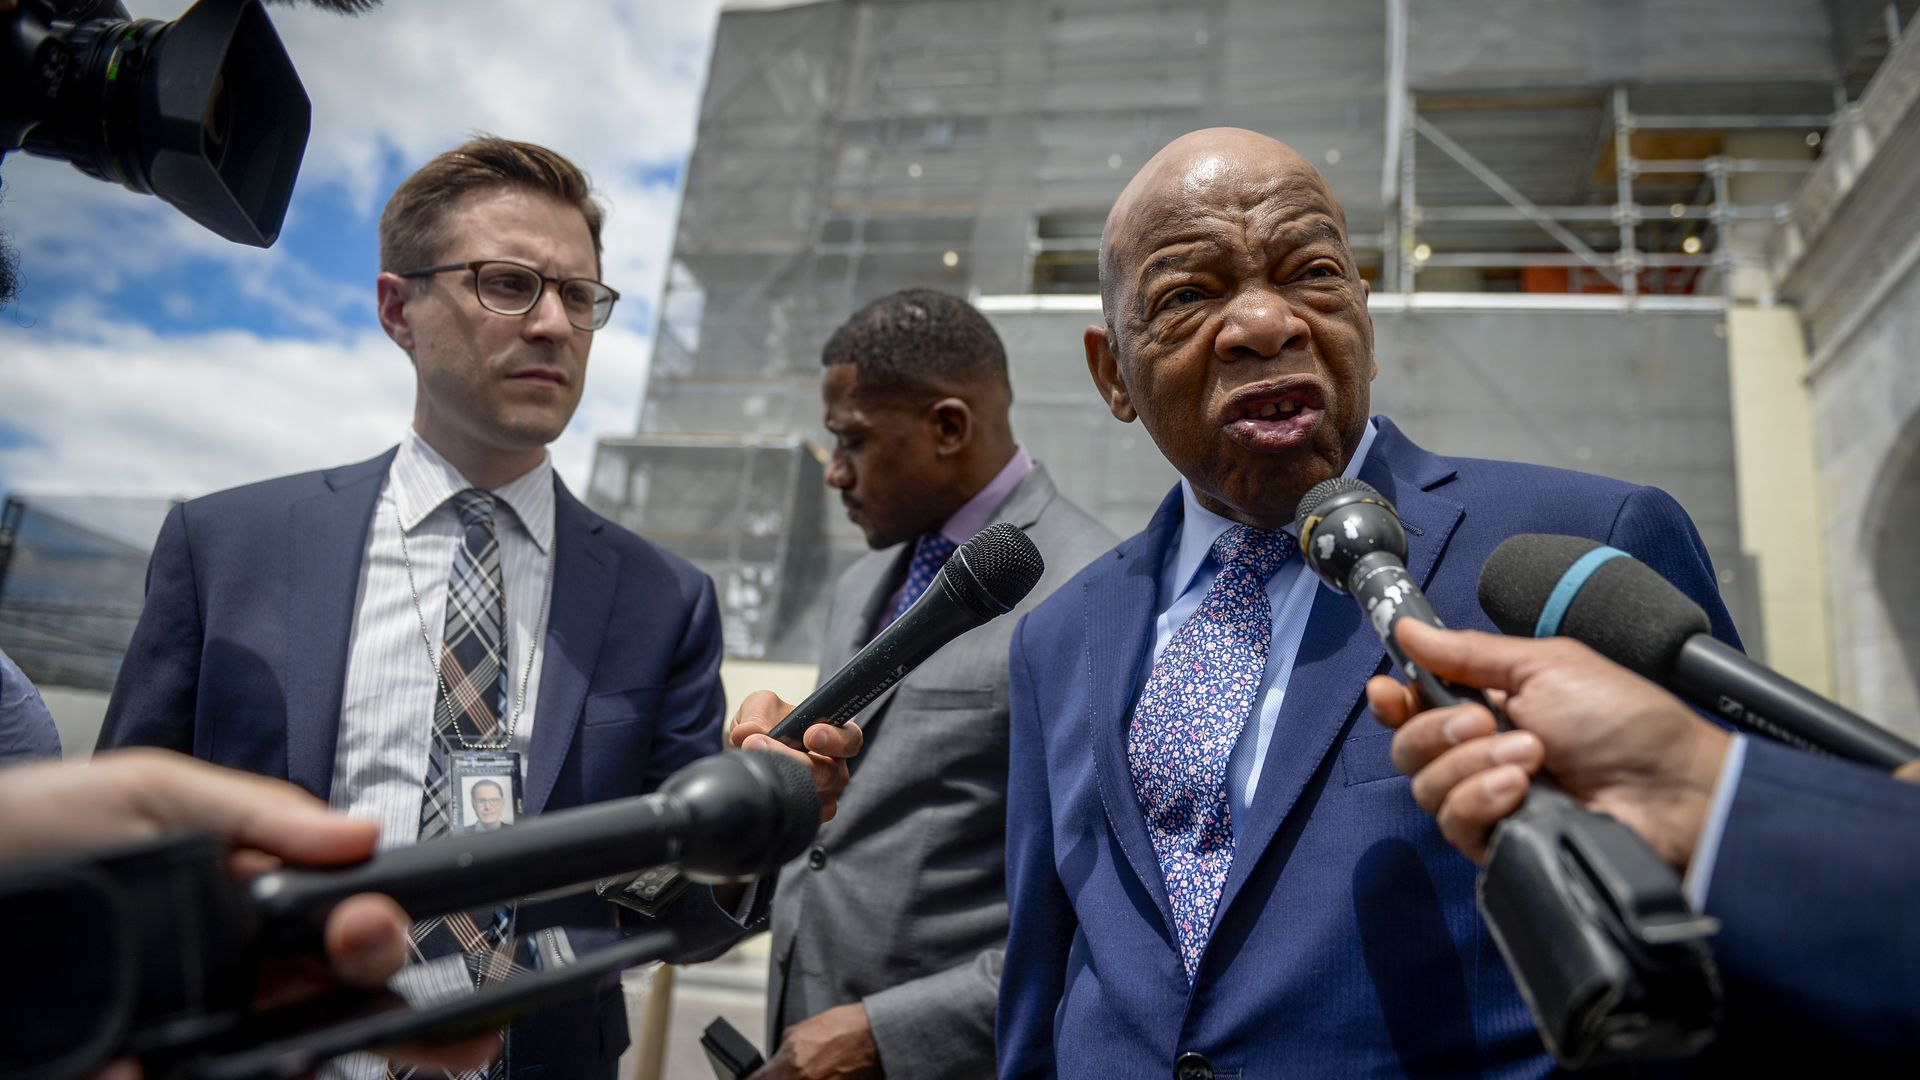 Rep. John Lewis being interviewed by reporters outside of the Capitol building